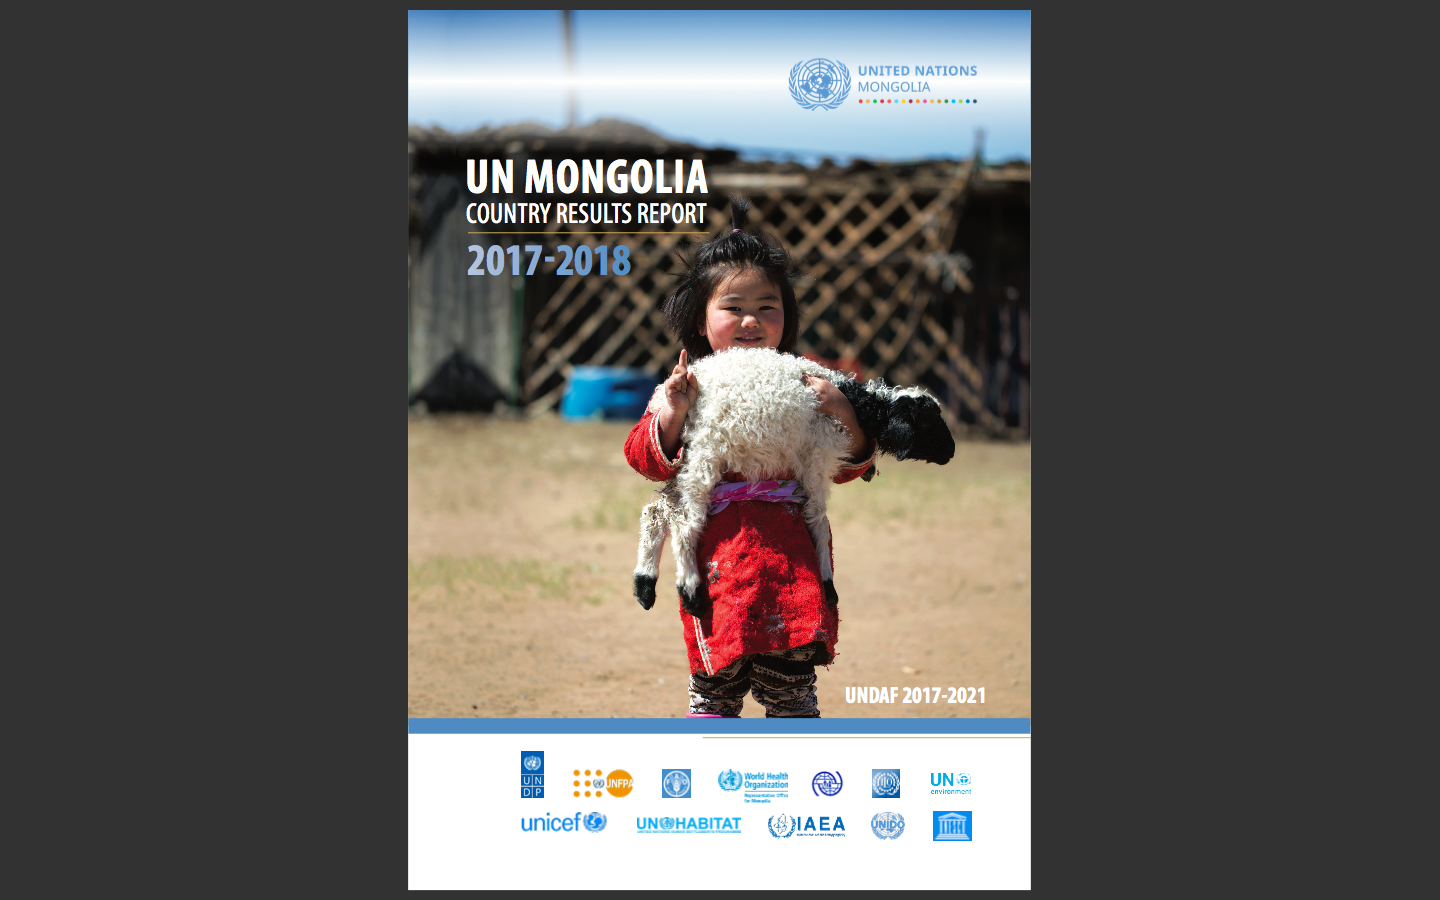 Cover photo by UNFPA